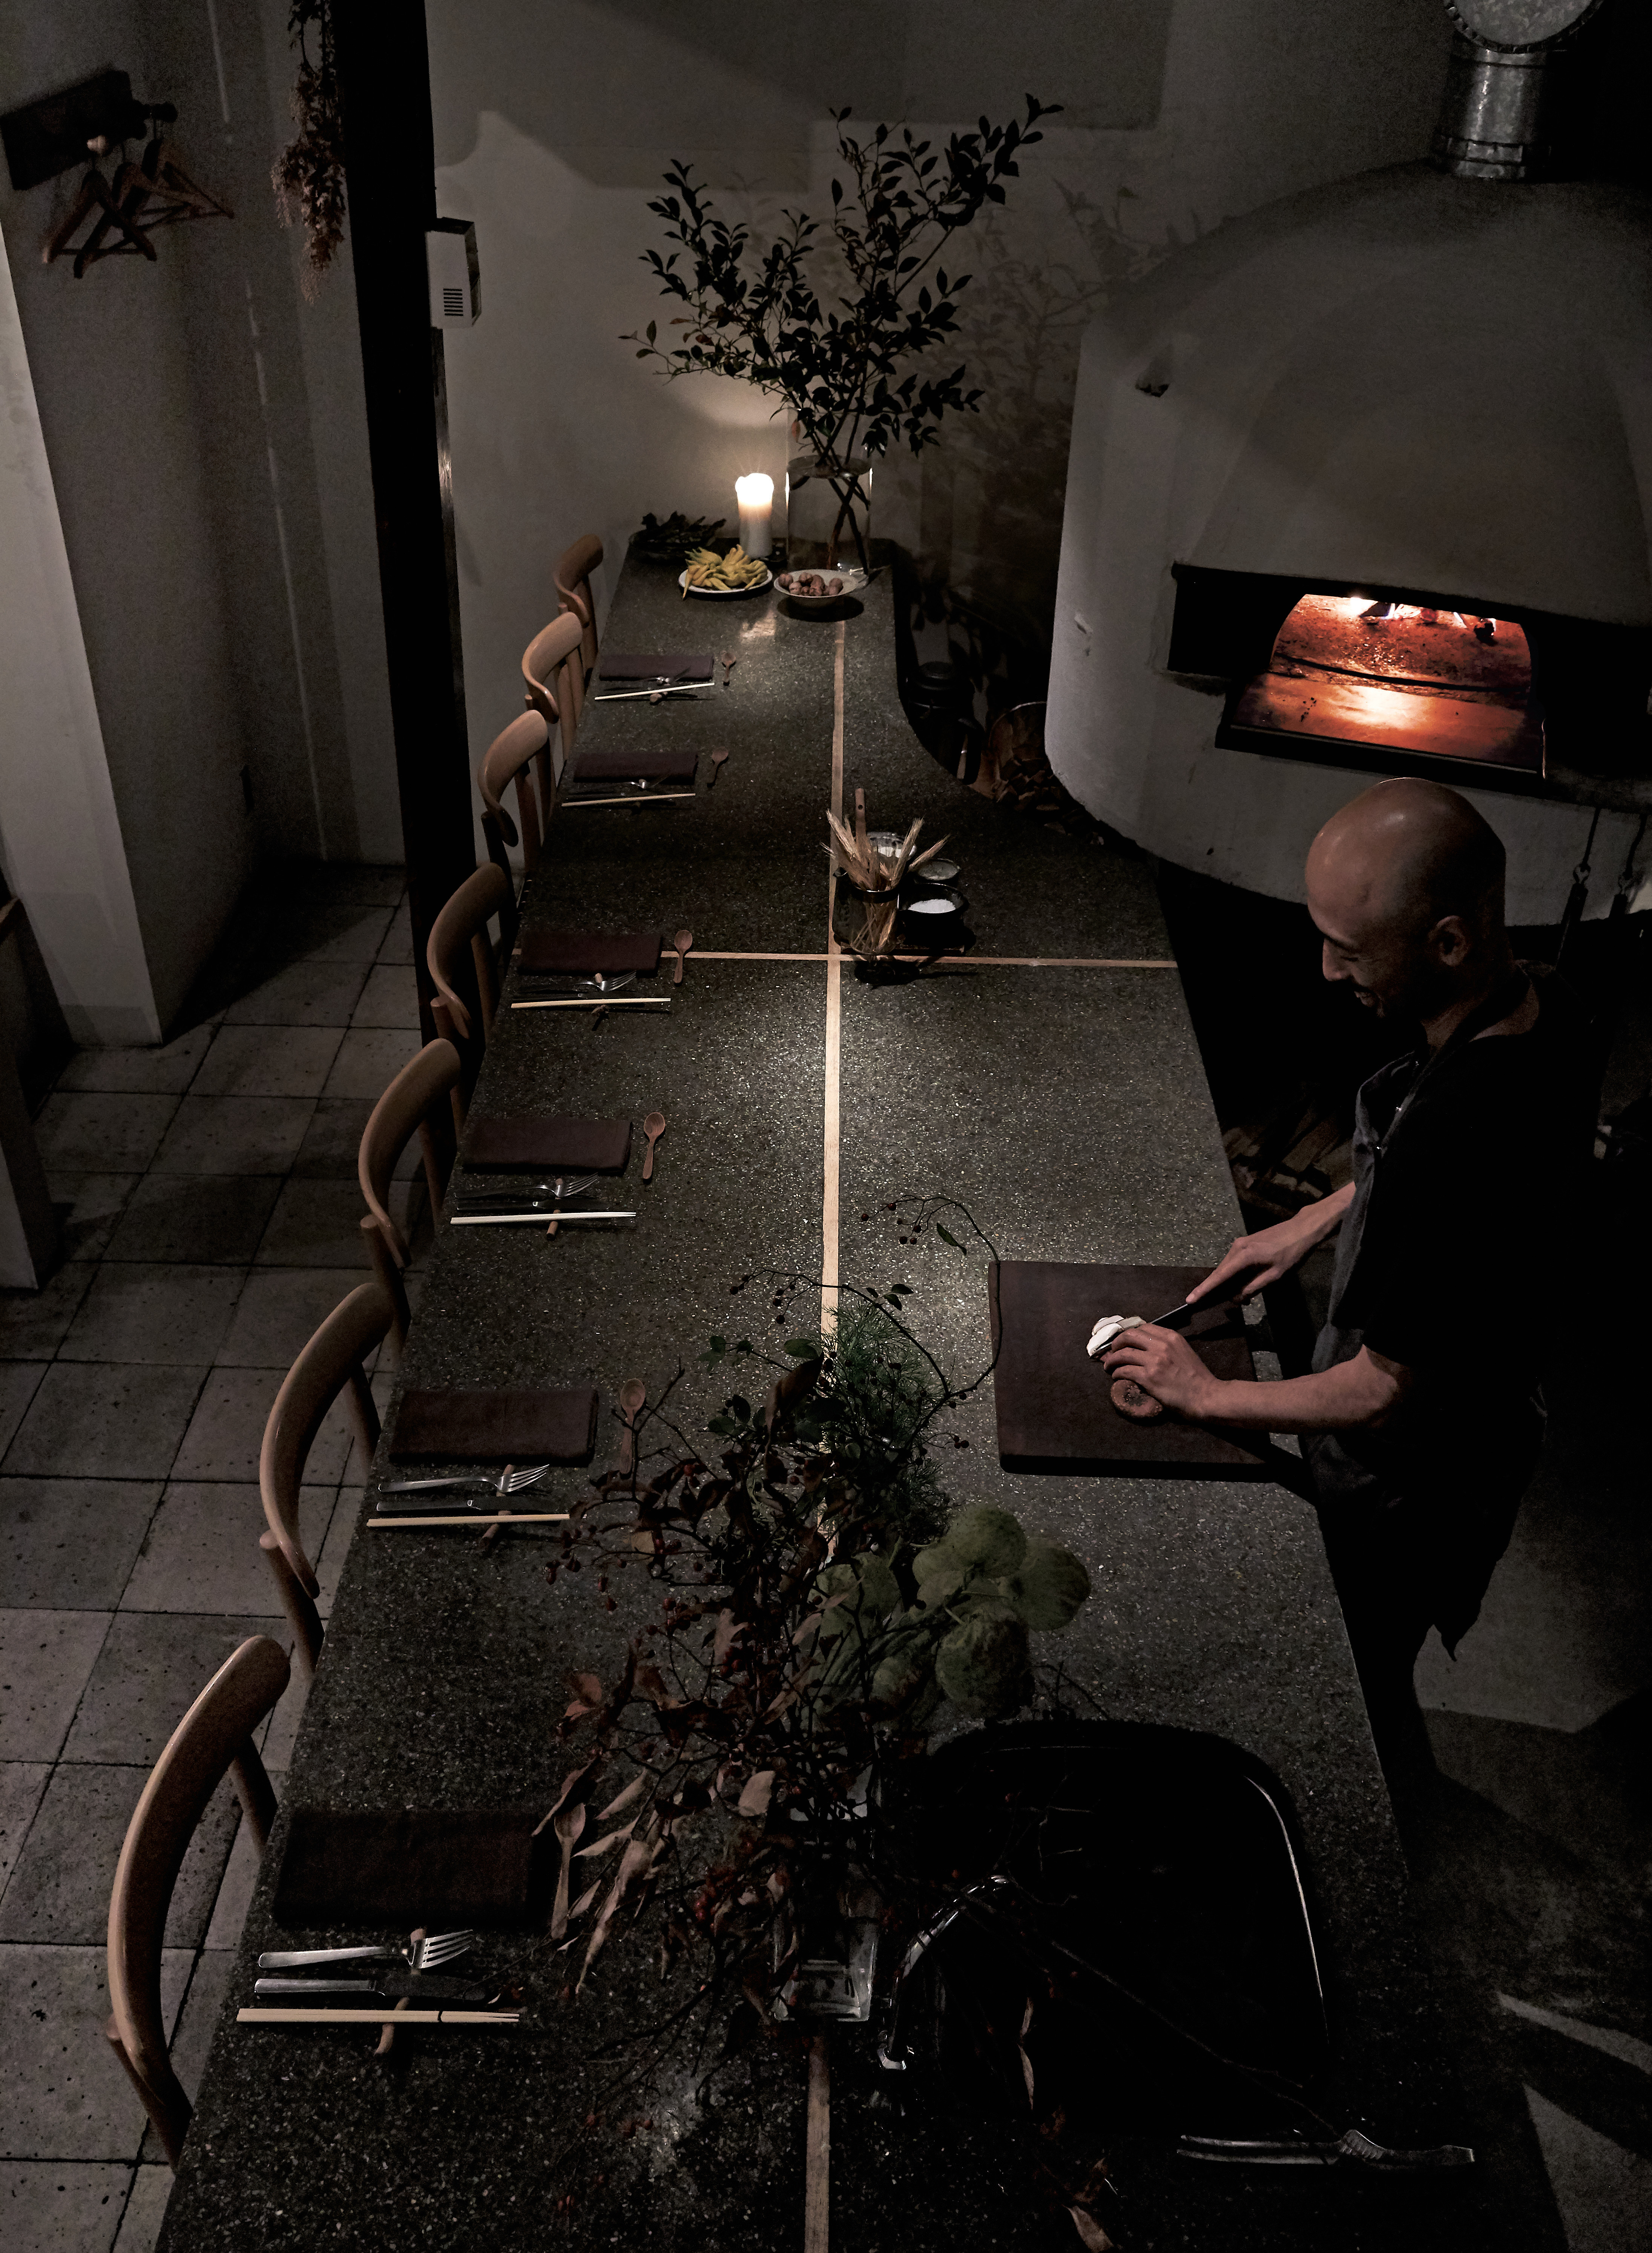 Yoshihiro Imai inside his restaurant, monk. All photographs by Yuka Yanazume